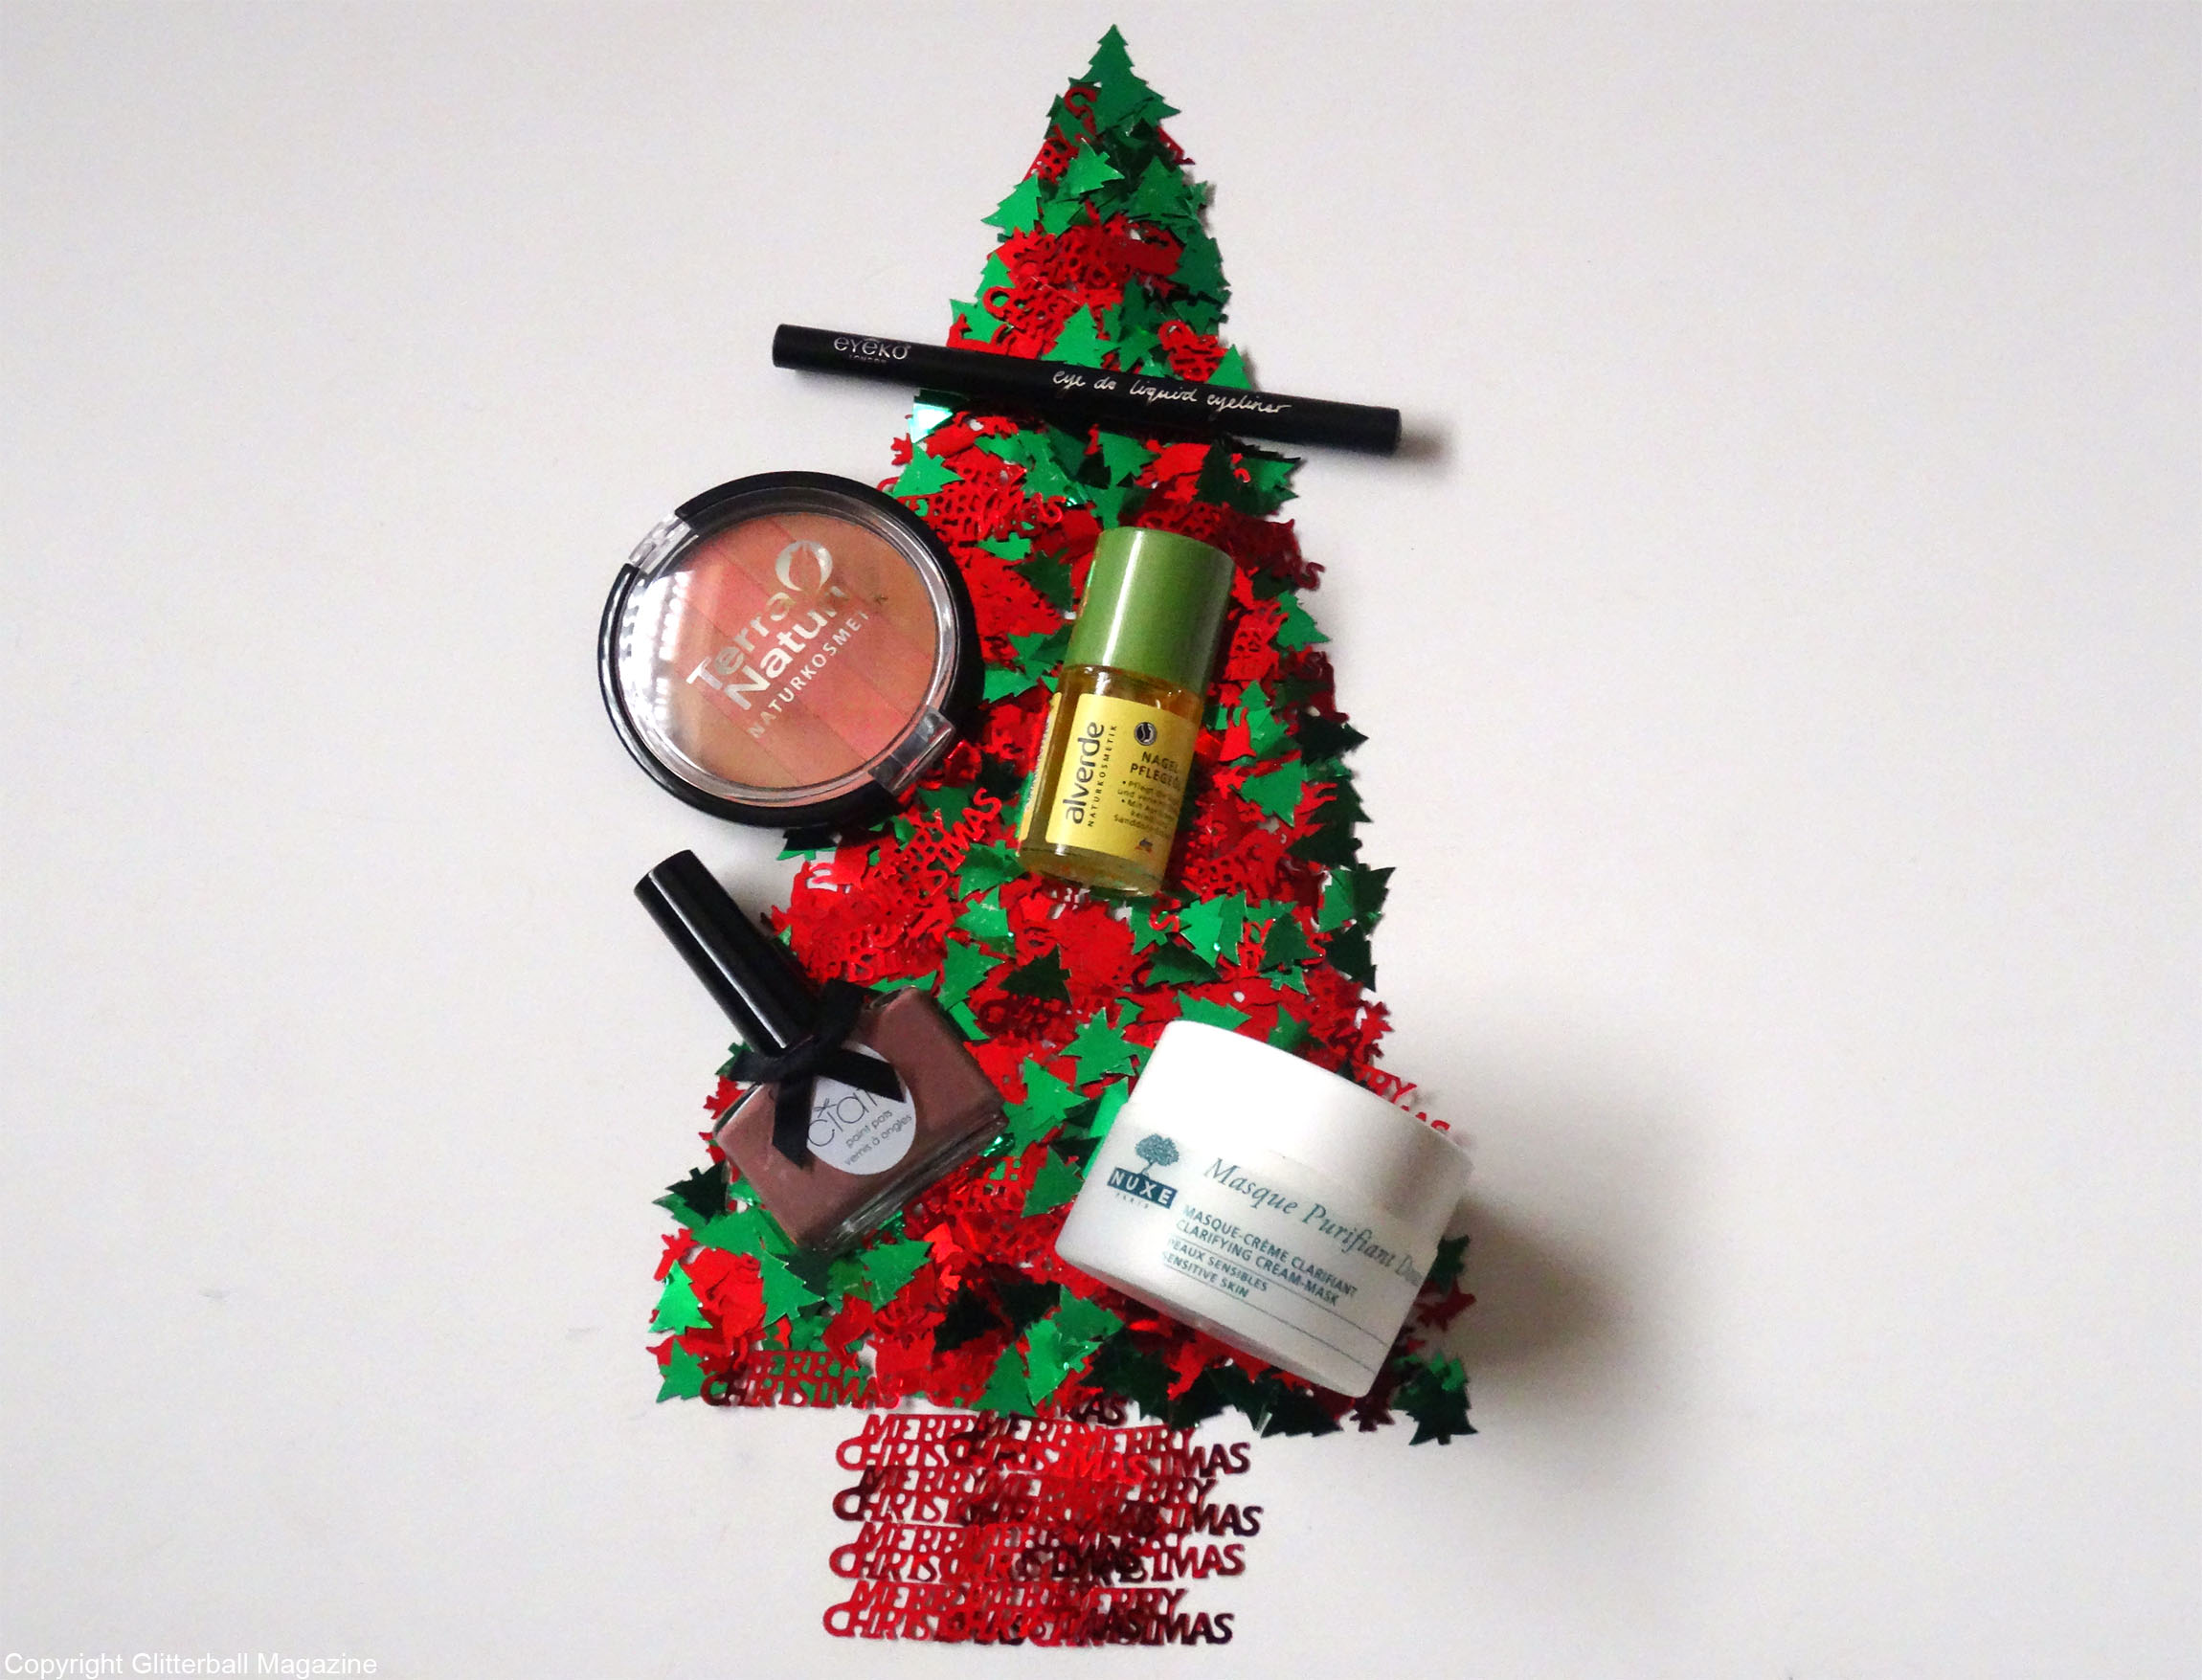 MUST-HAVE BEAUTY PRODUCTS FOR CHRISTMAS - Glitterball Magazine